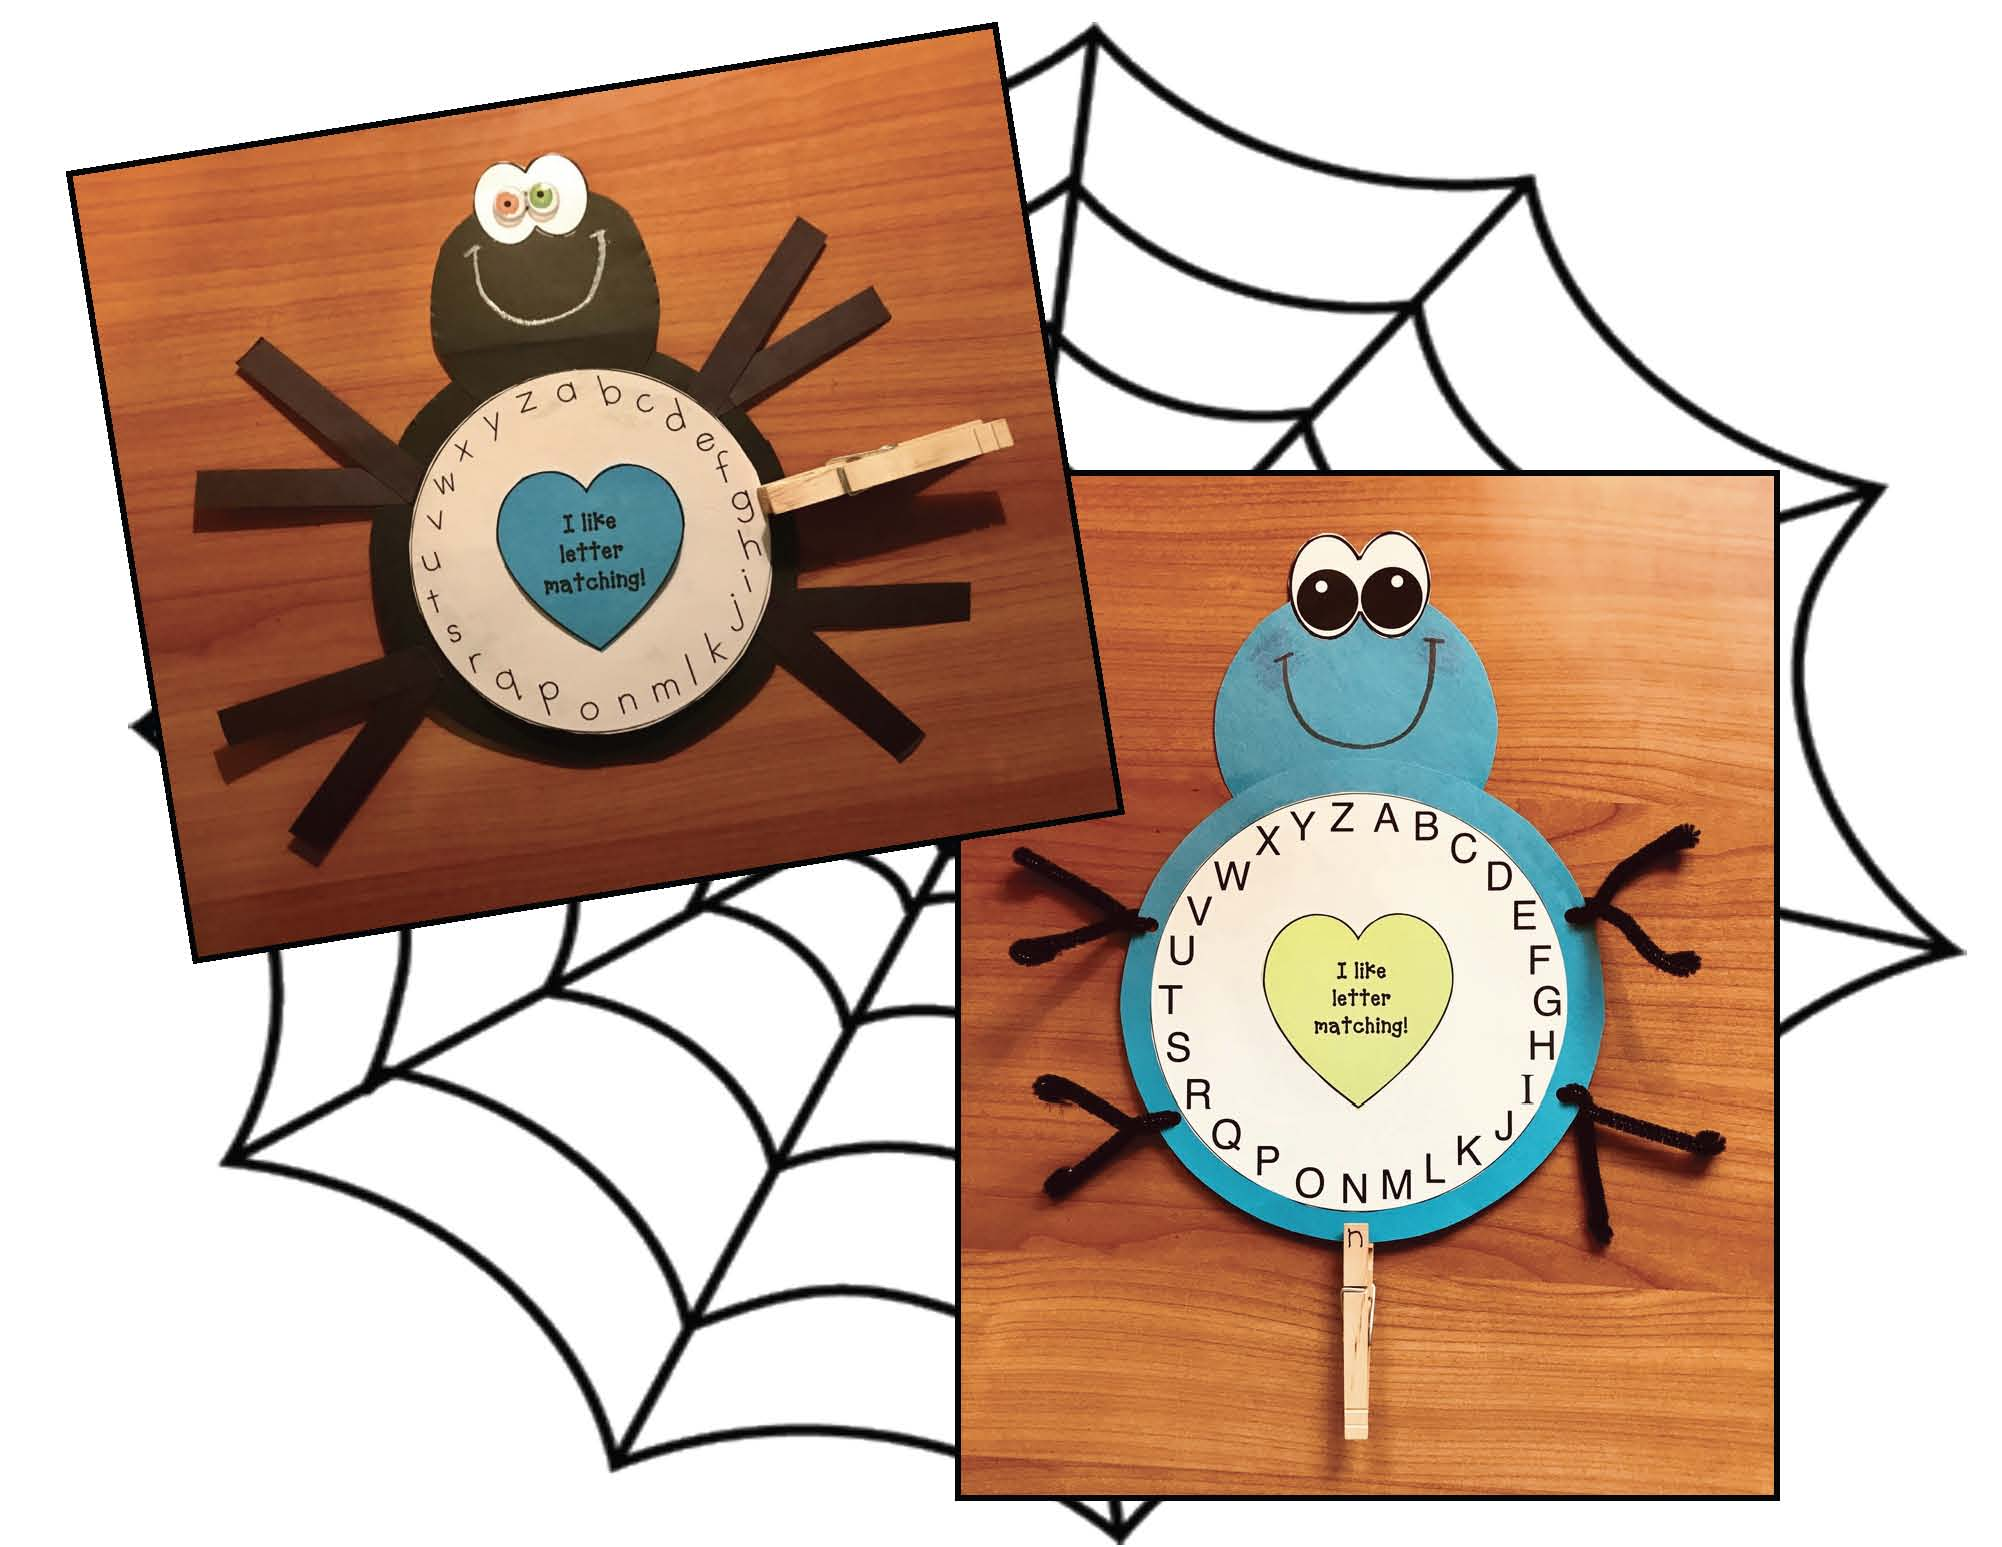 spider activities, spider games, spider crafts, alphabet games, alphabet assessments, alphabet centers, alphabet crafts